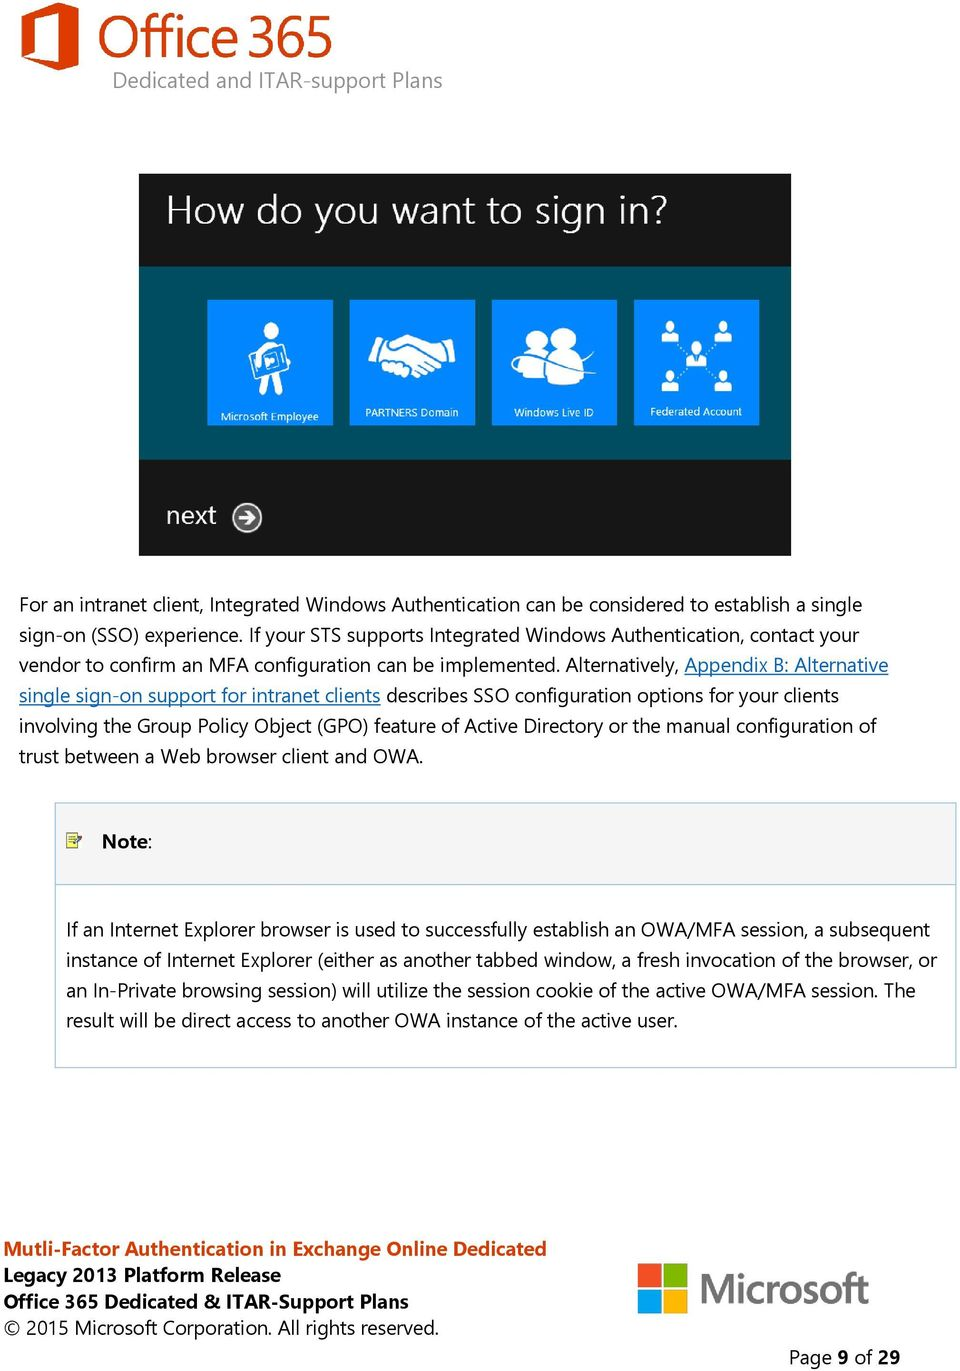 Multi-Factor Authentication for OWA in Exchange Online